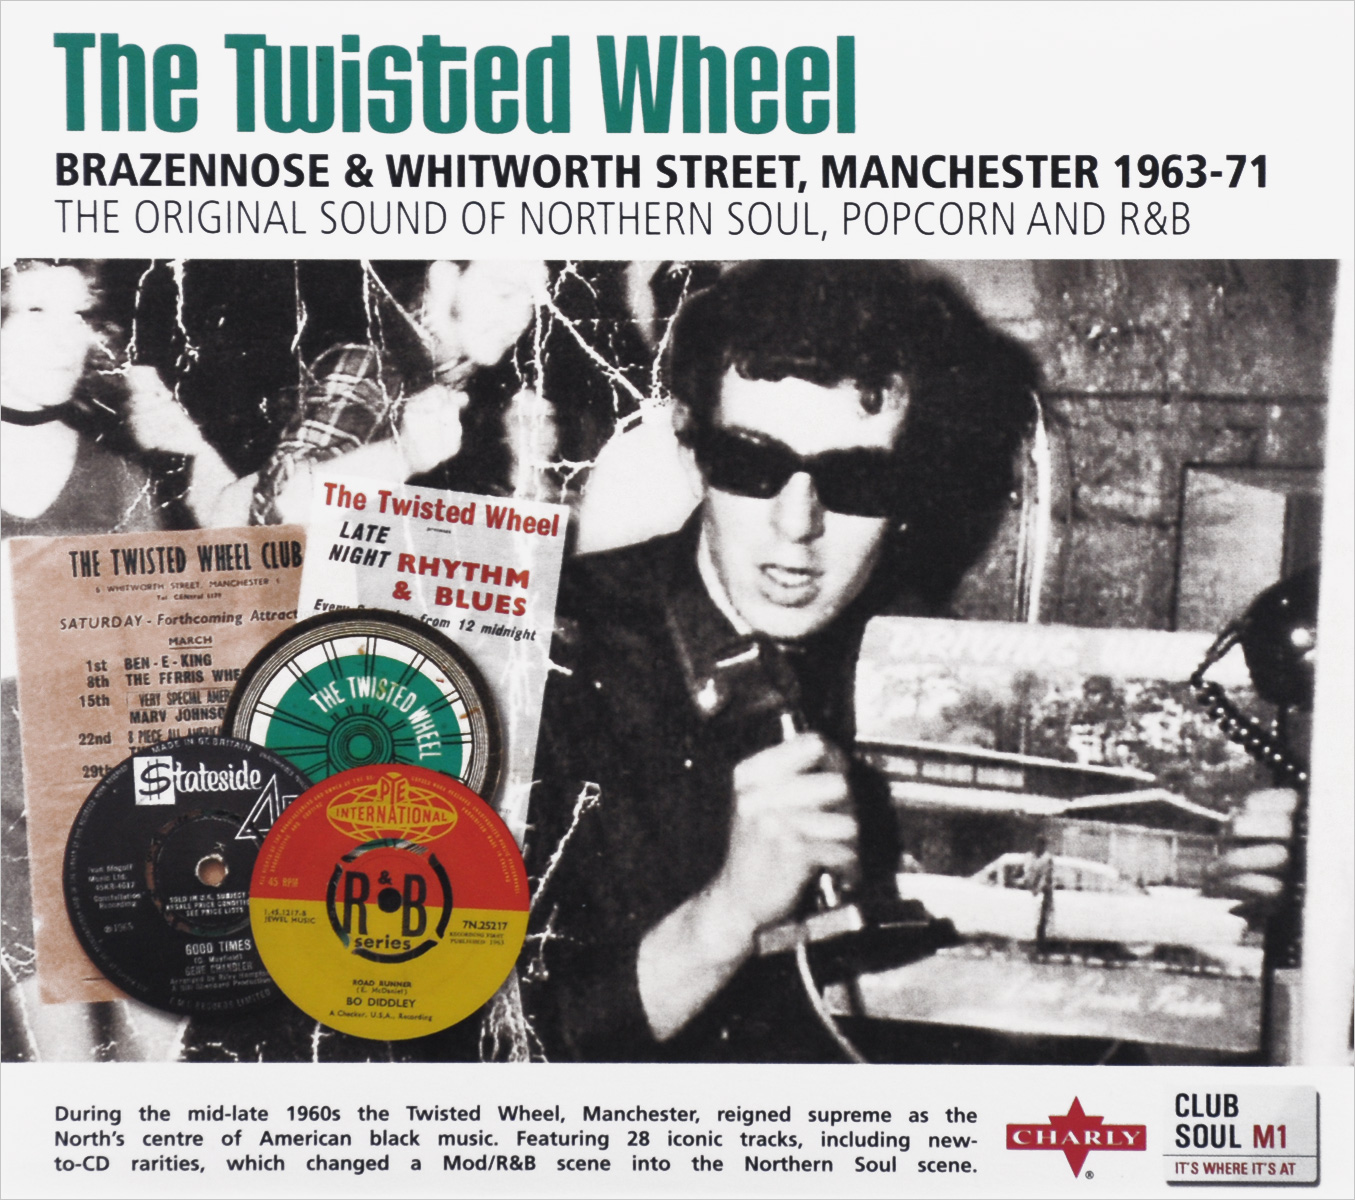 The Twisted Wheel. Brazebbose & Whitworth Street, Manchester 1963-71. The Original Sound Of Nothern Soul, Popcorn And R&B